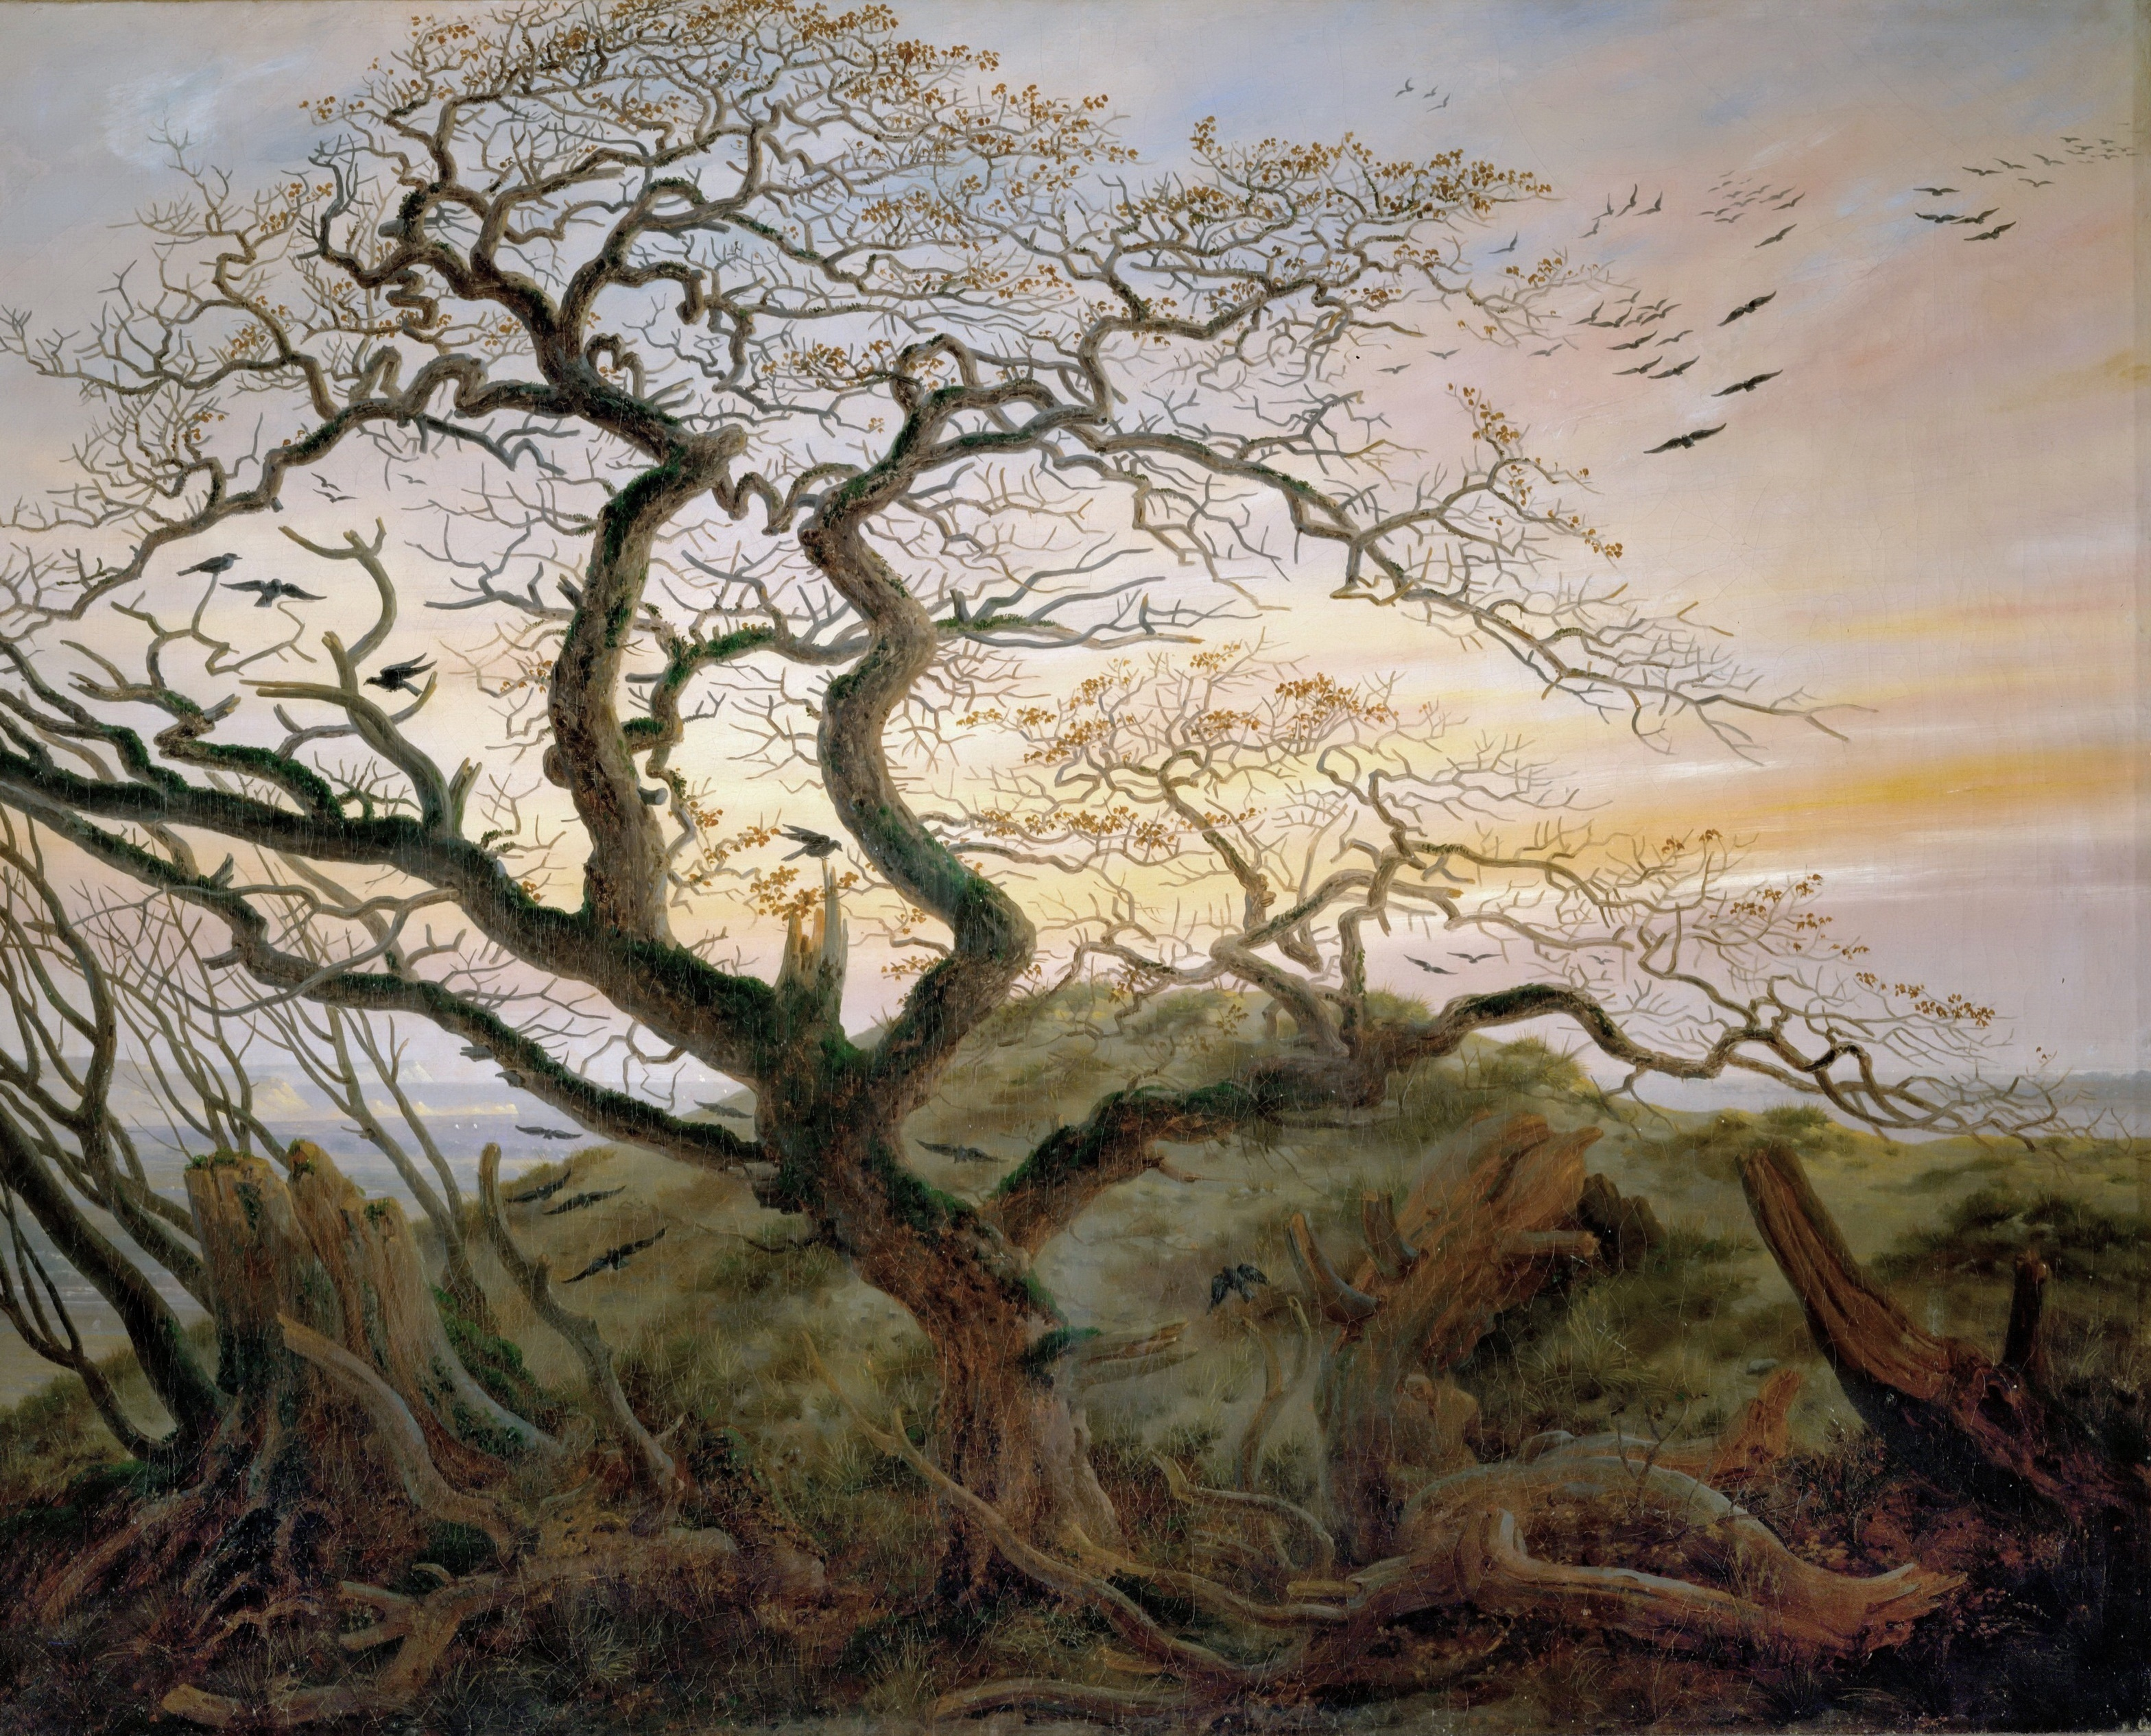 The Tree of Crows - Wikipedia